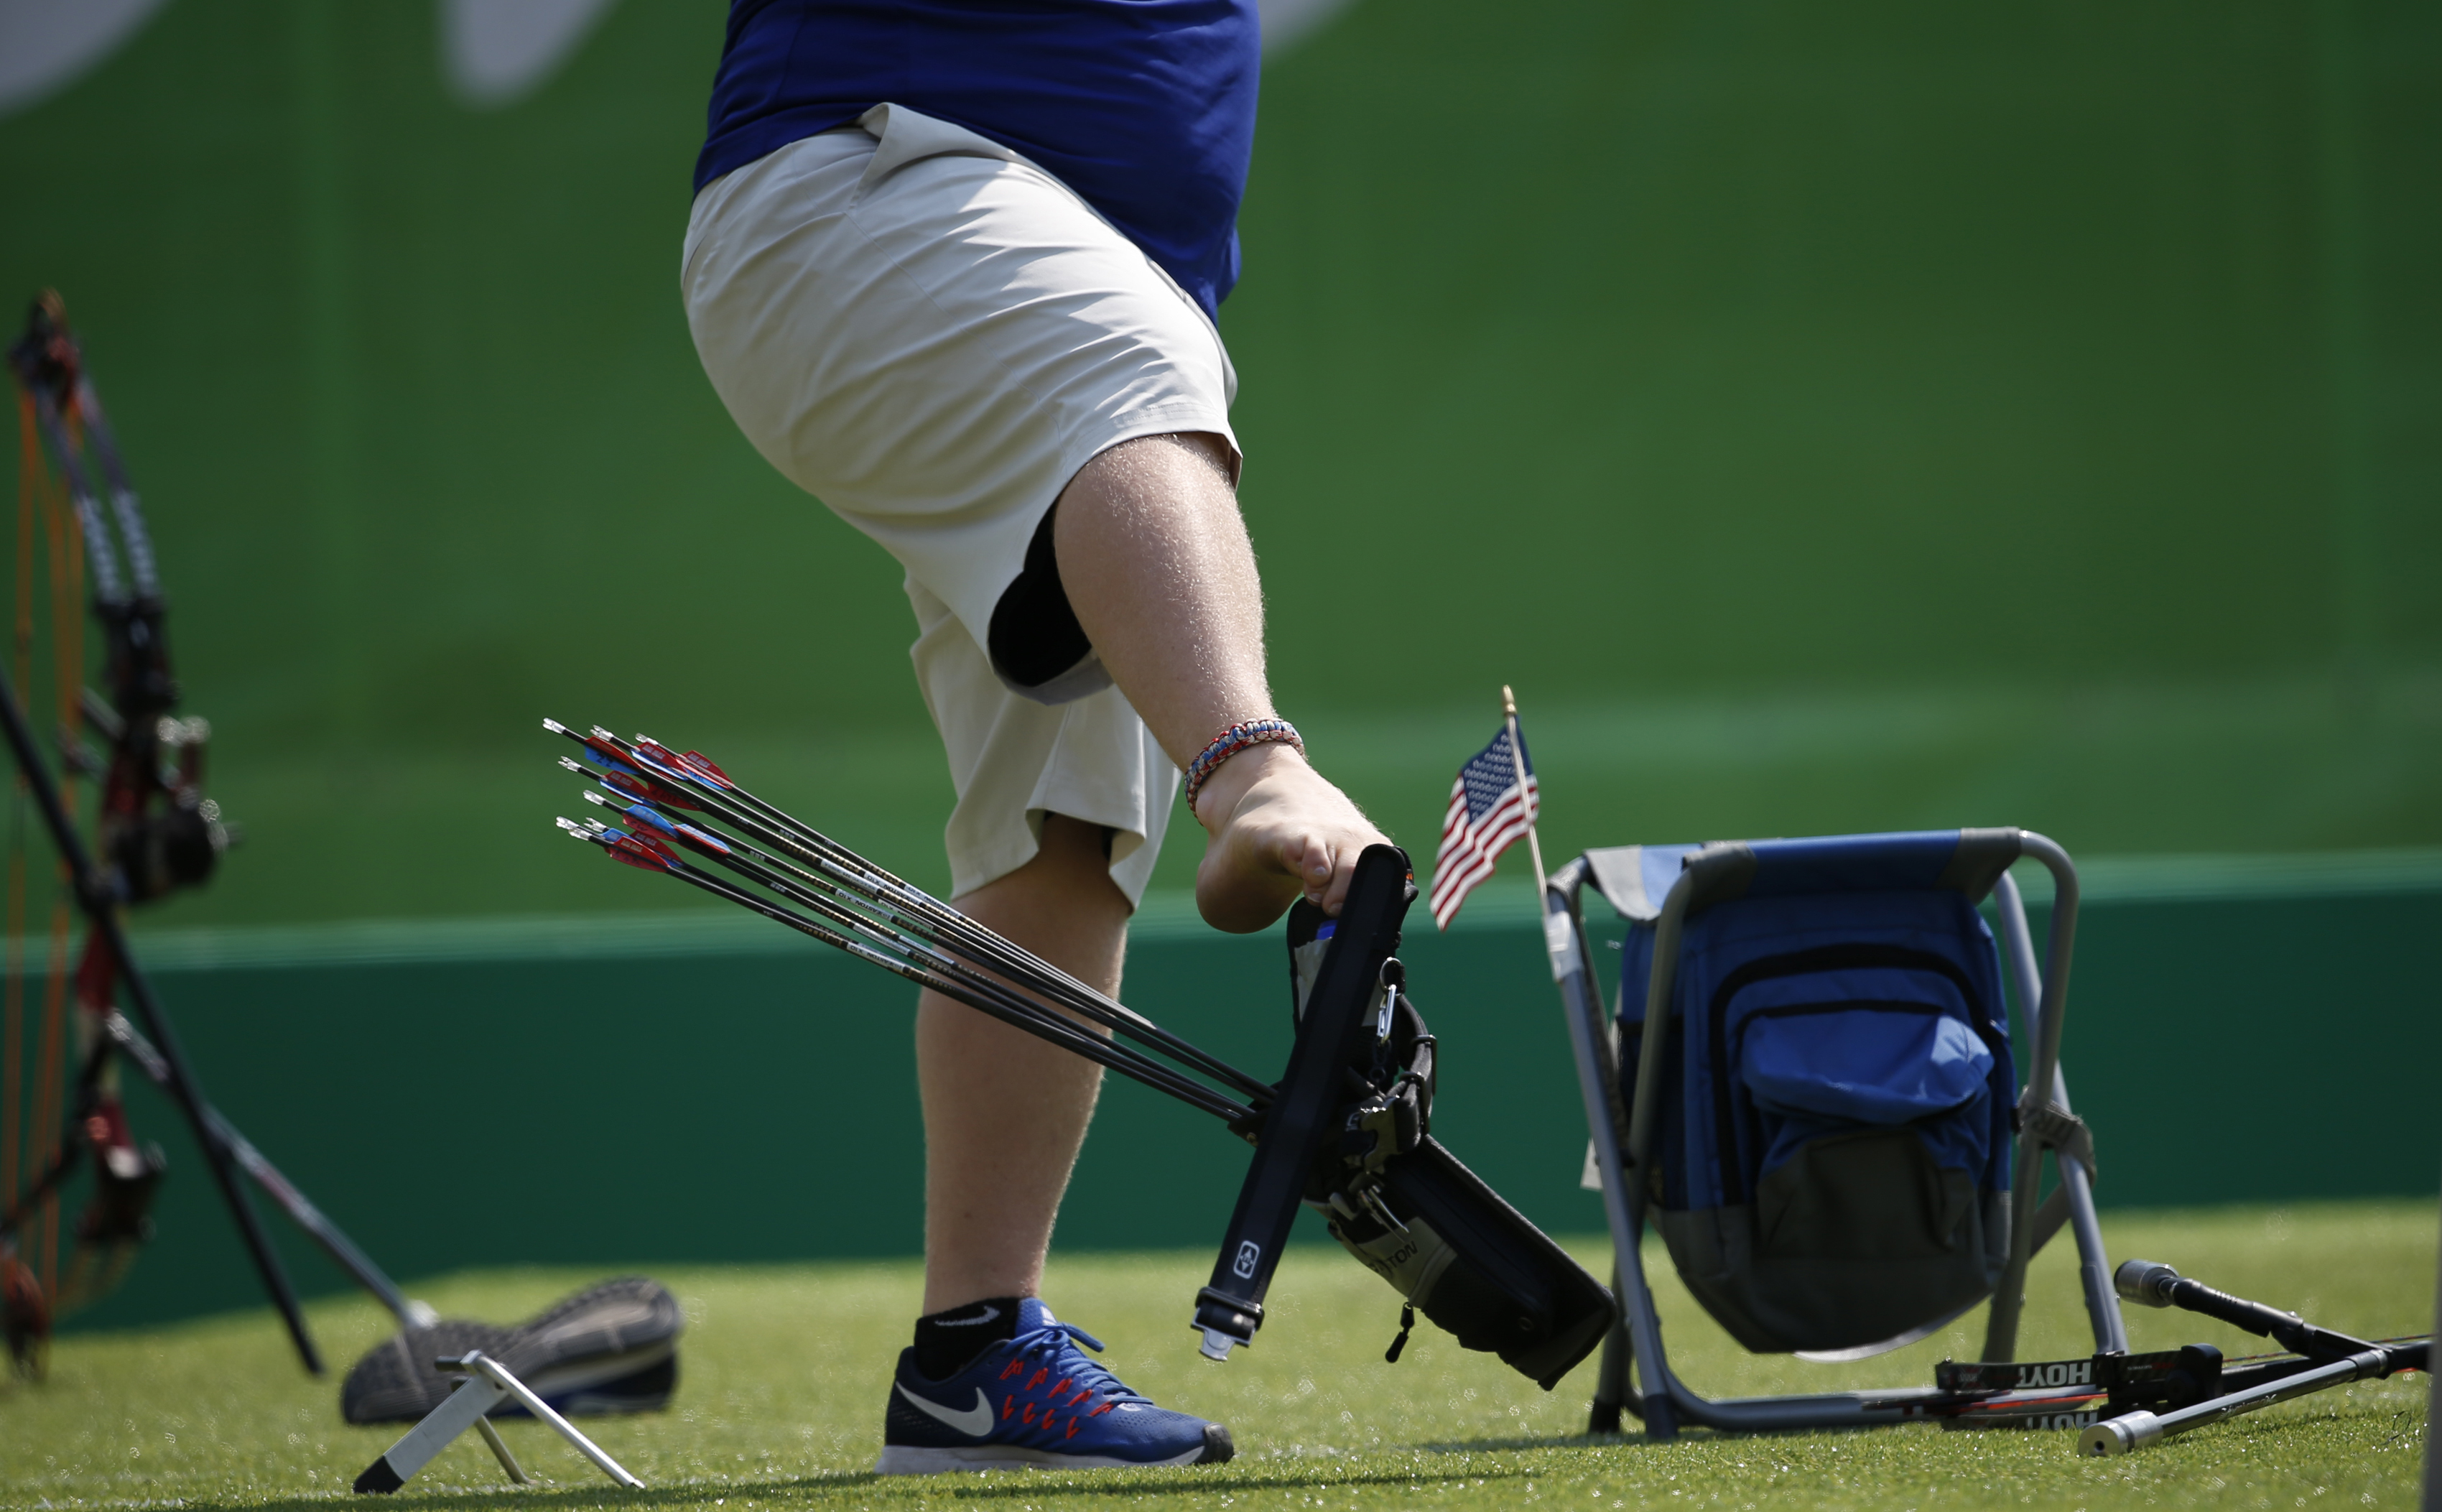 Matt Stutzman, of United States, holds the bow with his foot as he competes in the individual compound-open, during the Paralympic Games at the Sambadrome, in Rio de Janeiro, Brazil, Wednesday, Sept. 14, 2016.  Stutzman, known widely as the Armless Archer